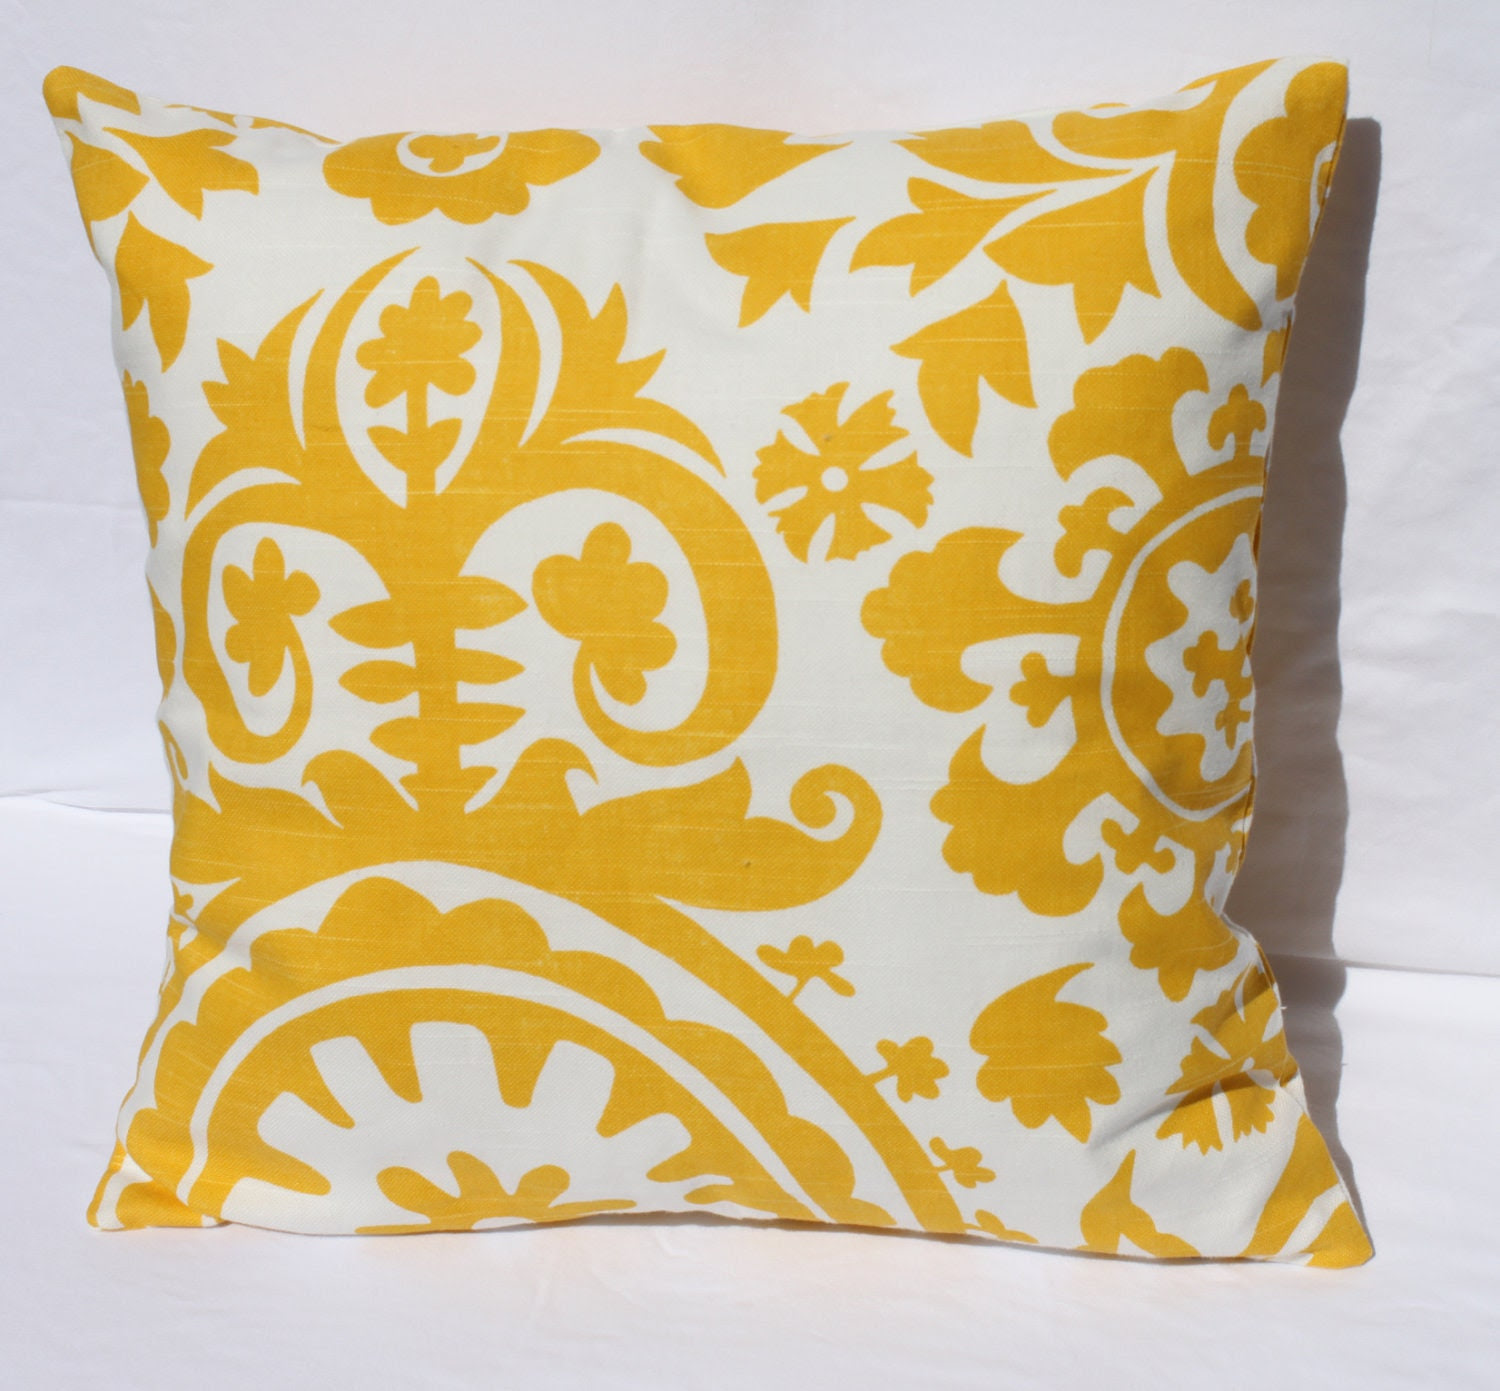 Throw Pillow Yellow : Decorative Pillows Yellow fa123456fa